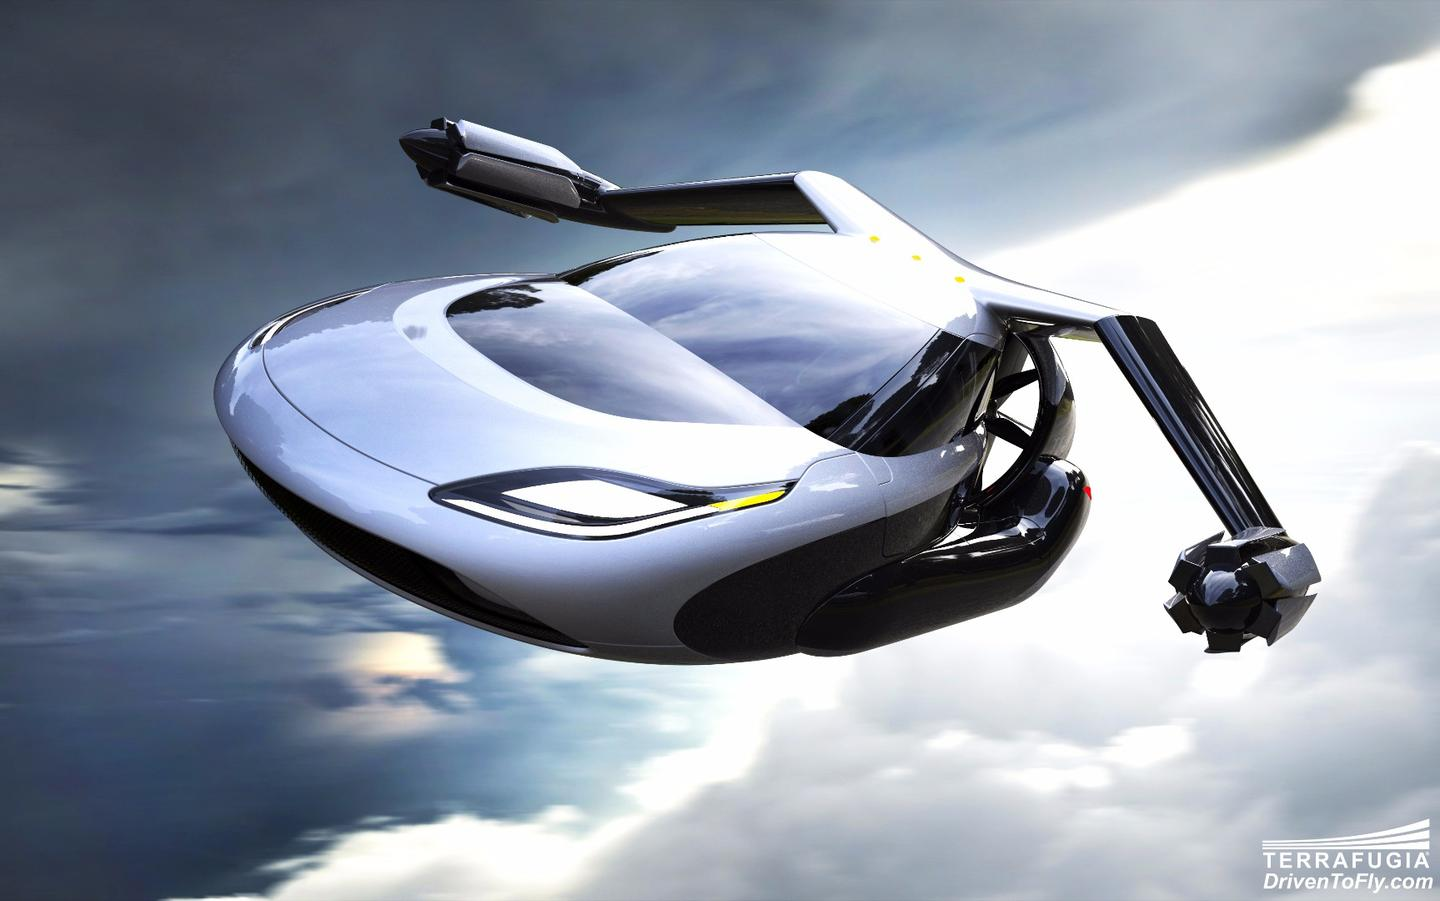 In cruise mode, the main 300 hp engine of the TF-X provides thrust and charges the batteries